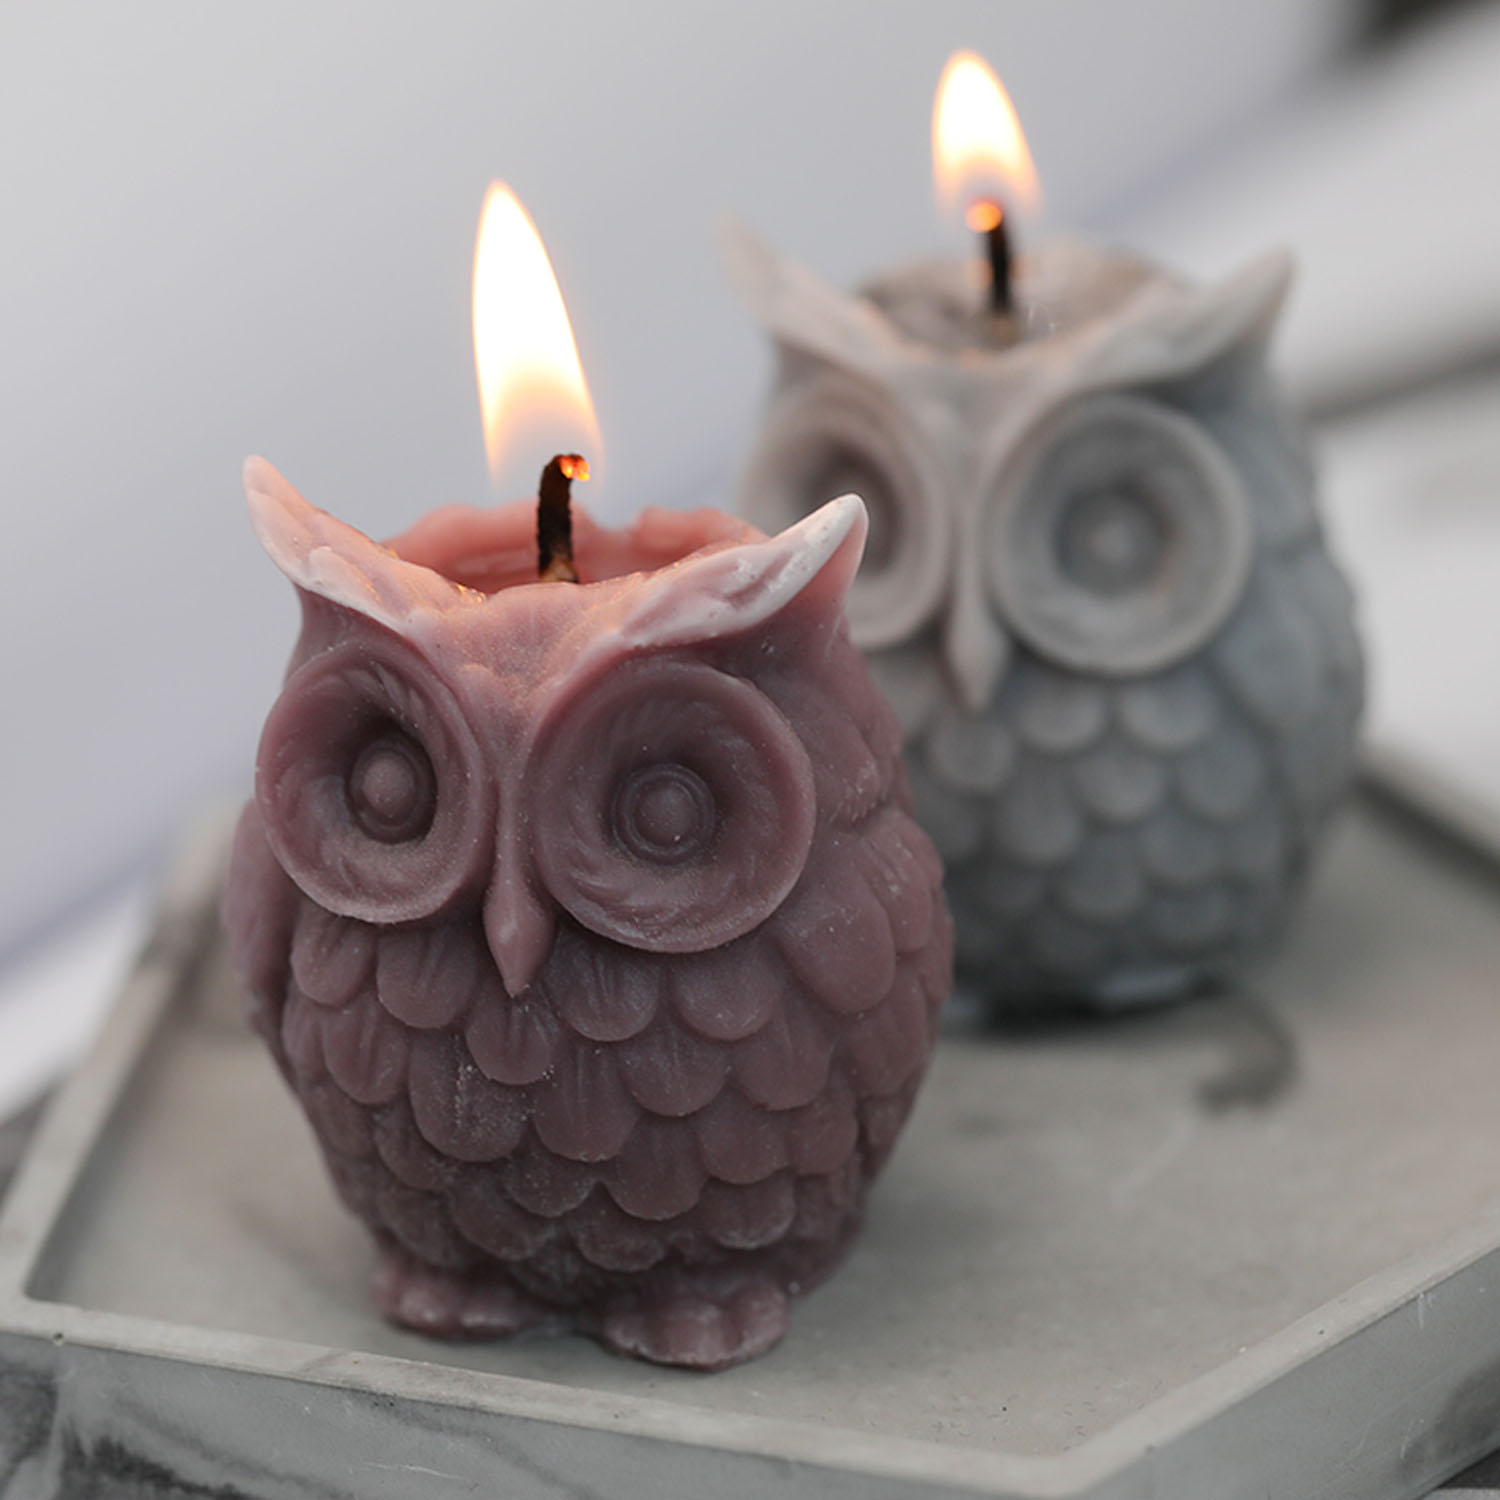 3D Silicone Owl Candle Mold DIY Handmade Resin Molds For DIY Candle Handmade Craft Making  Owl Shape Plaster Wax Candle Mould